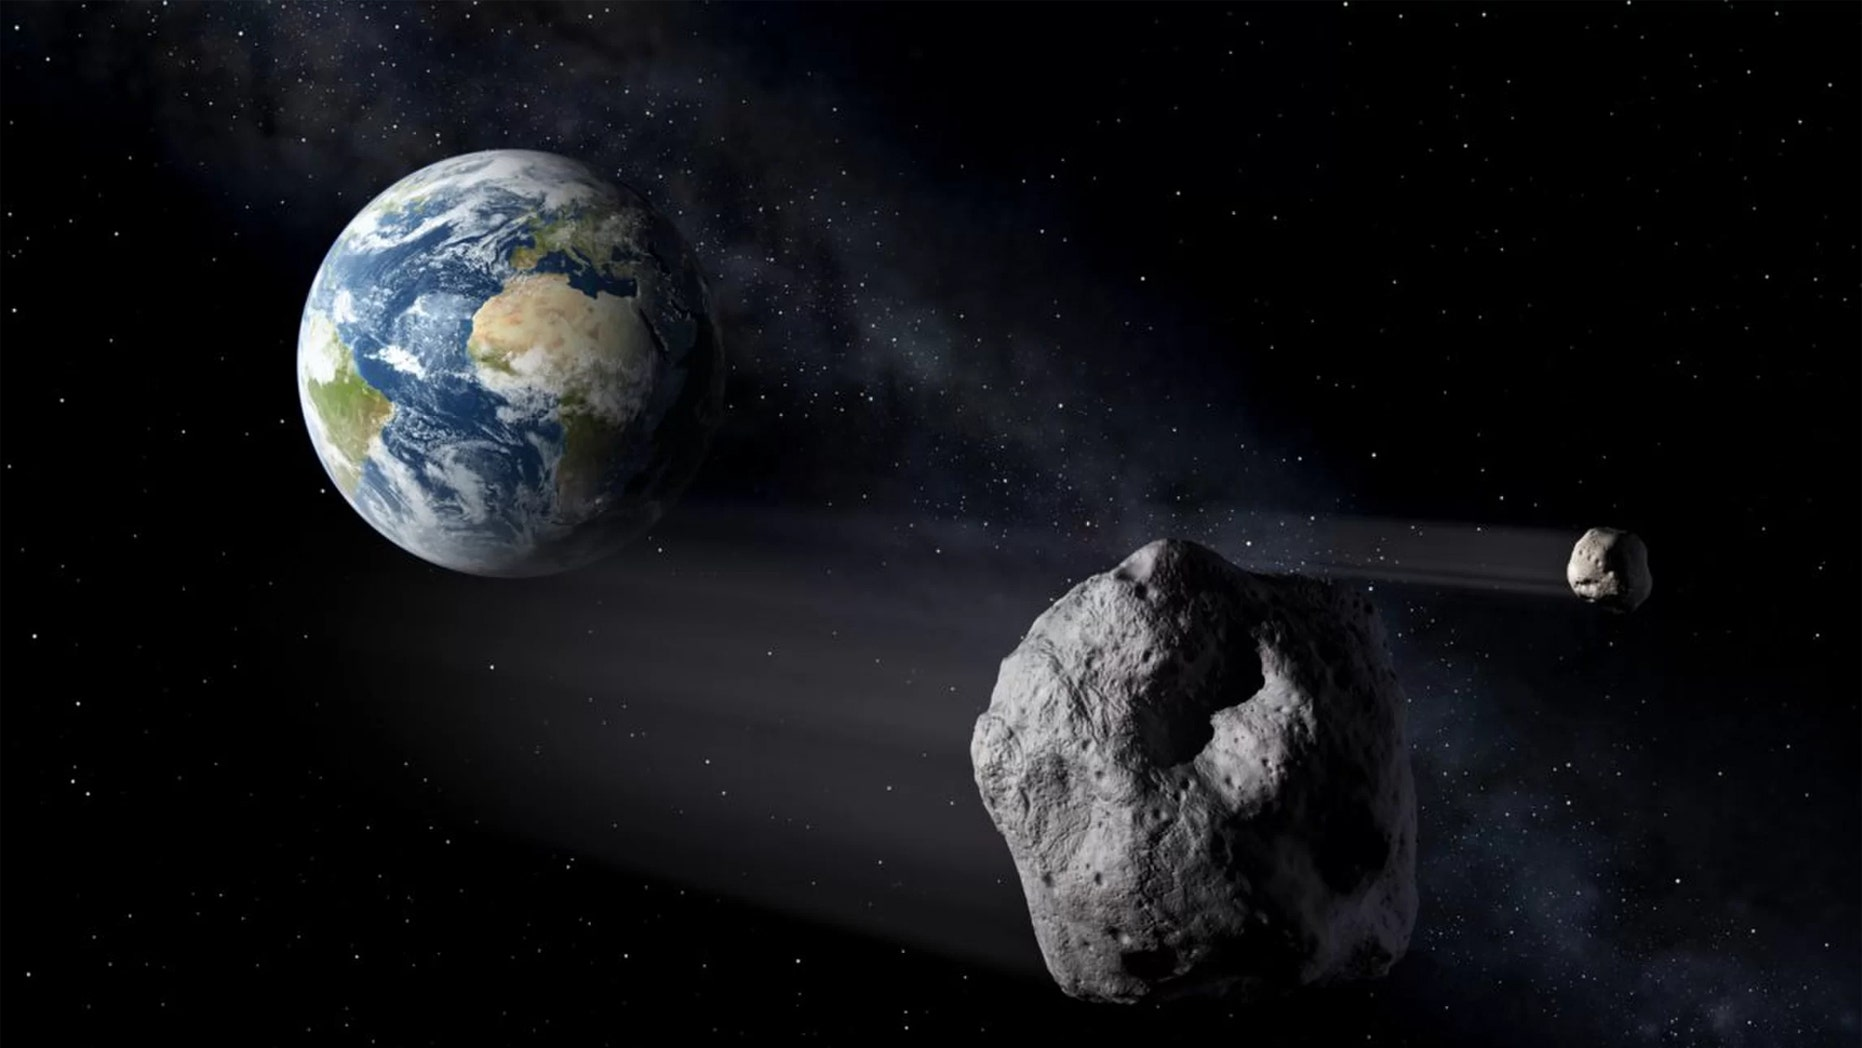 """Earth is surrounded by a host of asteroids, some of which may temporarily become """"minimoons."""" Credit: P. Carril/NASA"""